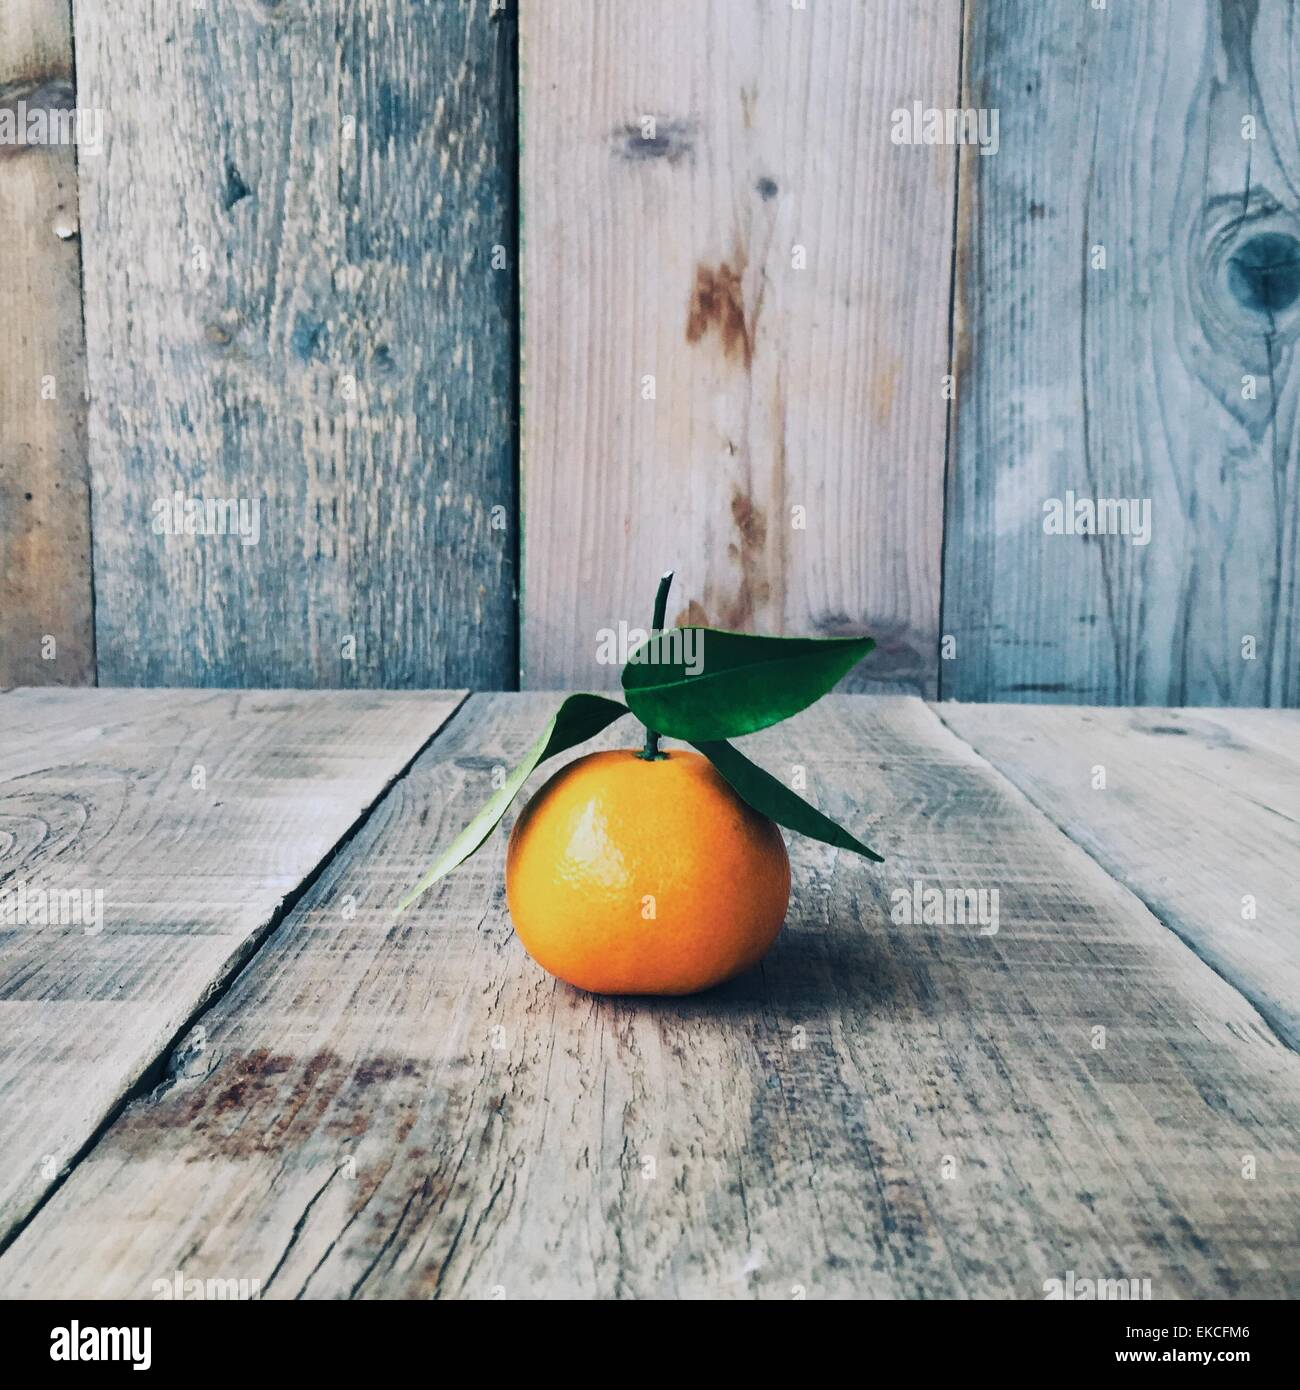 Tangerine on a wooden table - Stock Image